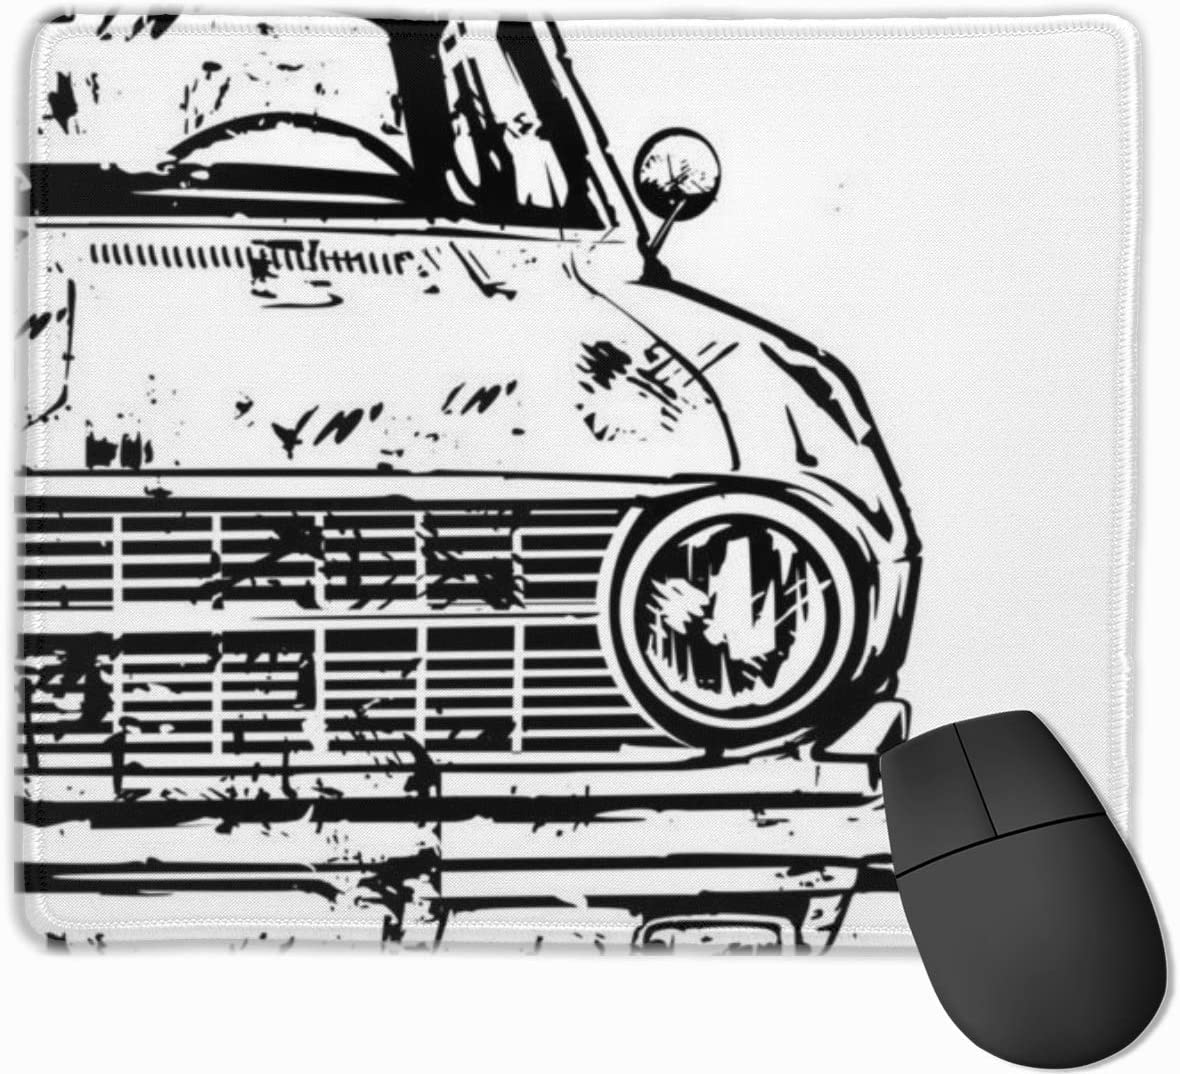 Gaming Mouse Pads Non-Slip Rubber Base Mousepad Mouse Car Machinery Outstanding Cool Mat for Desktops Computer Office Laptops Polyester Silky Smooth Super Light Slip Rectangle